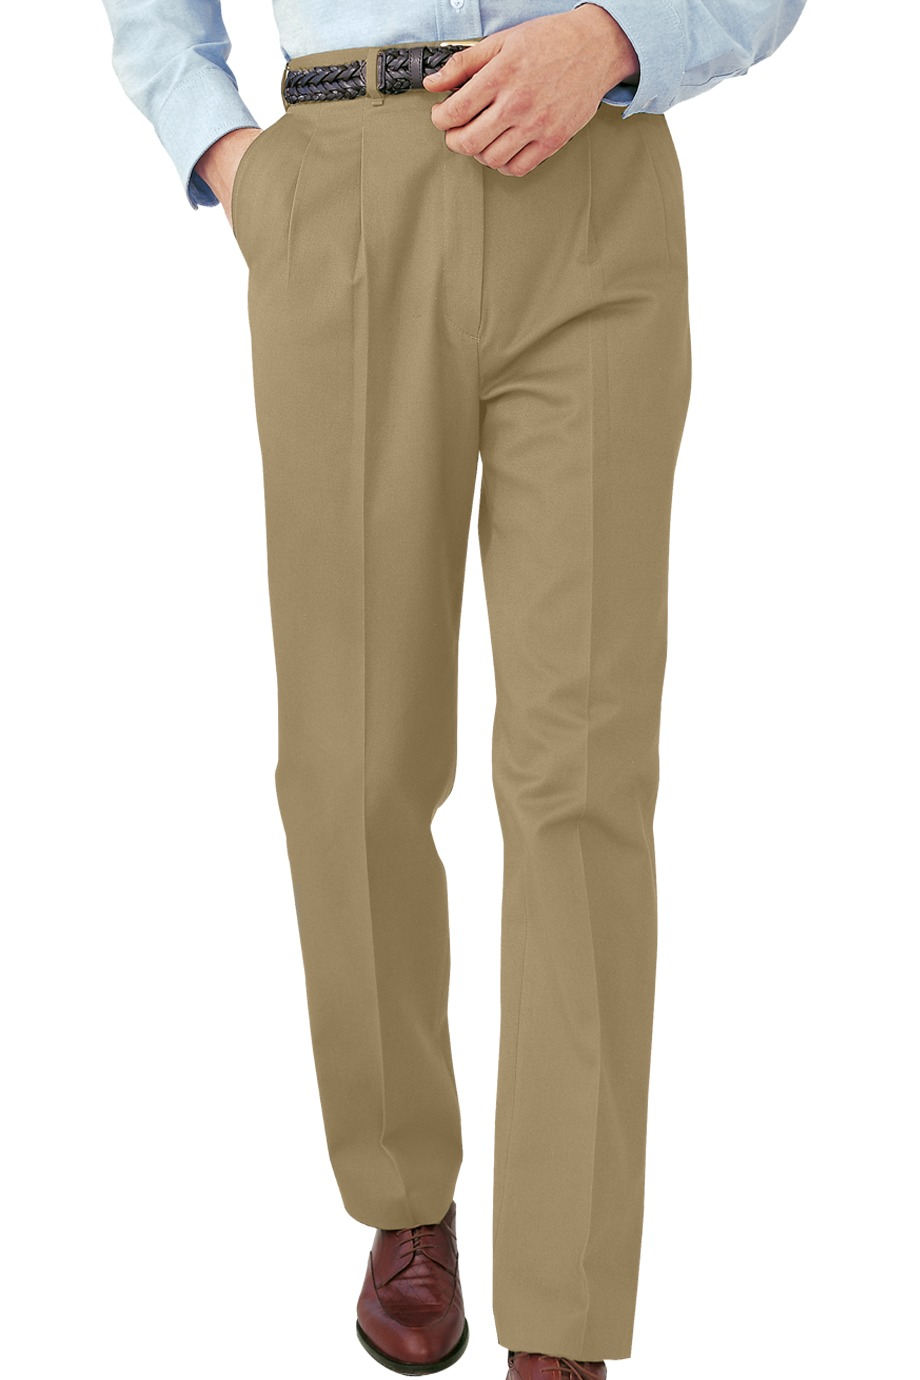 Edwards Garment 2630 - Men's All Cotton Pleated Pant